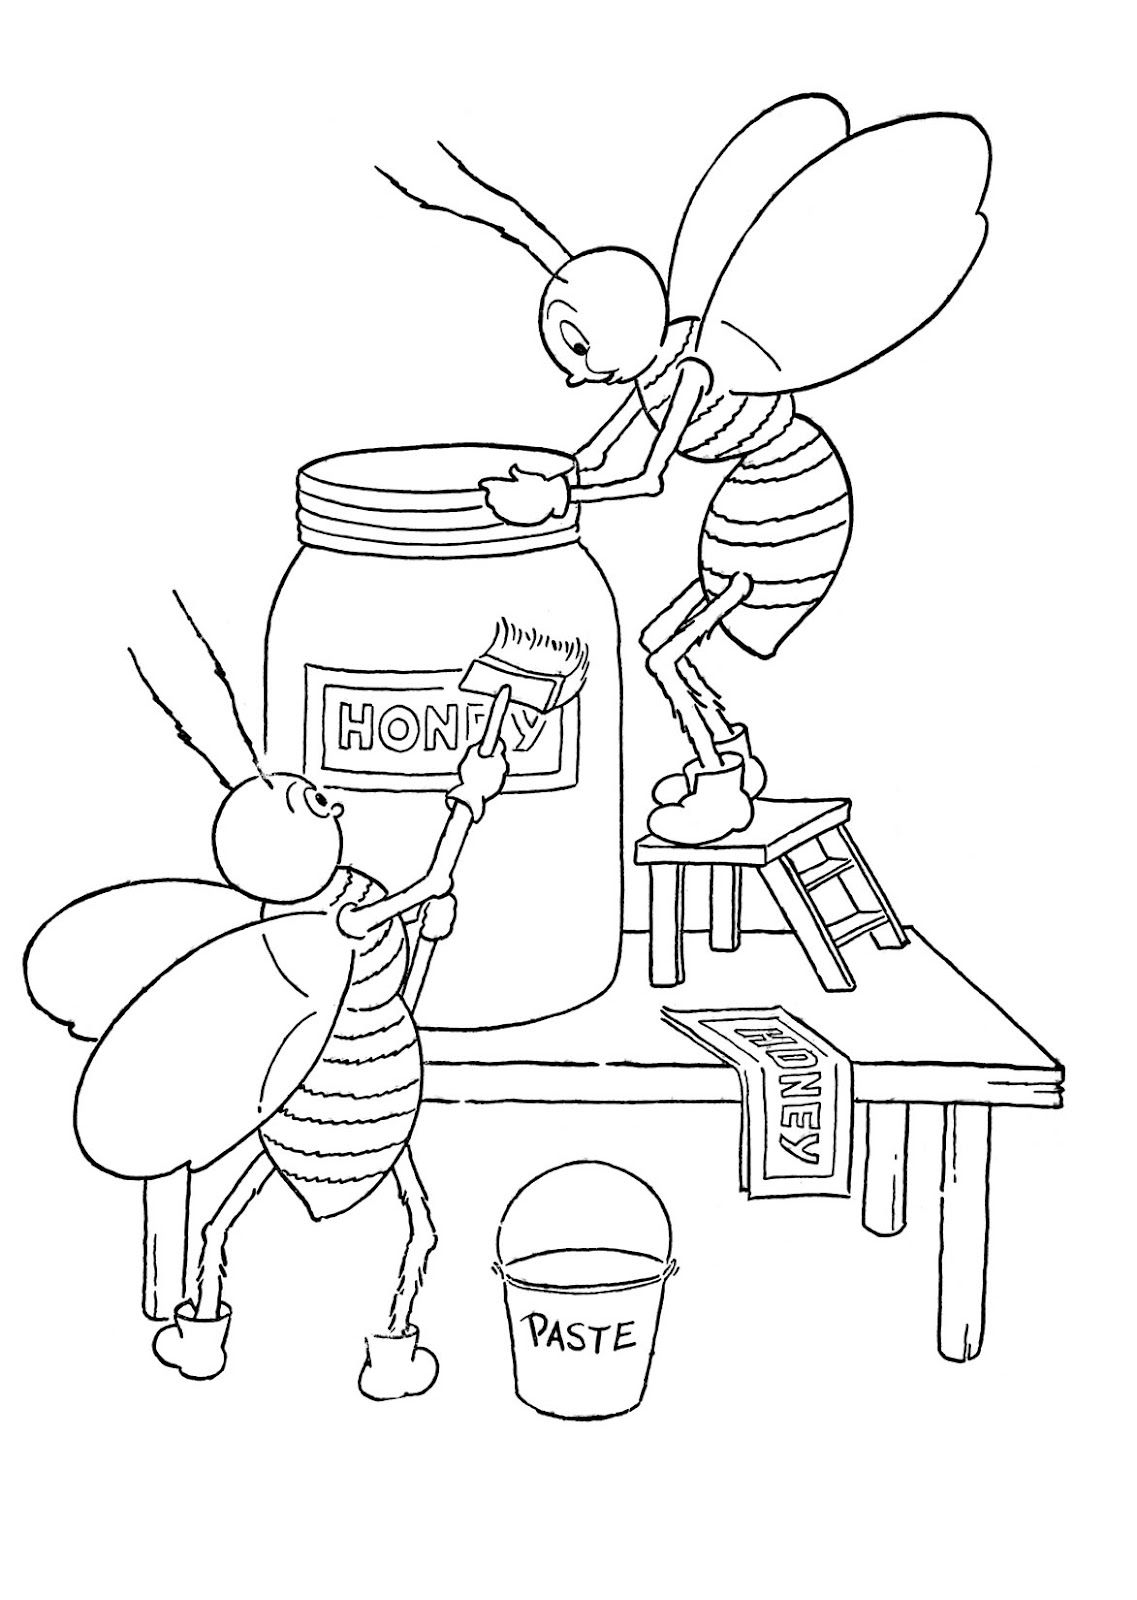 Kids Printable Honey Bees Coloring Page Bee Coloring Pages